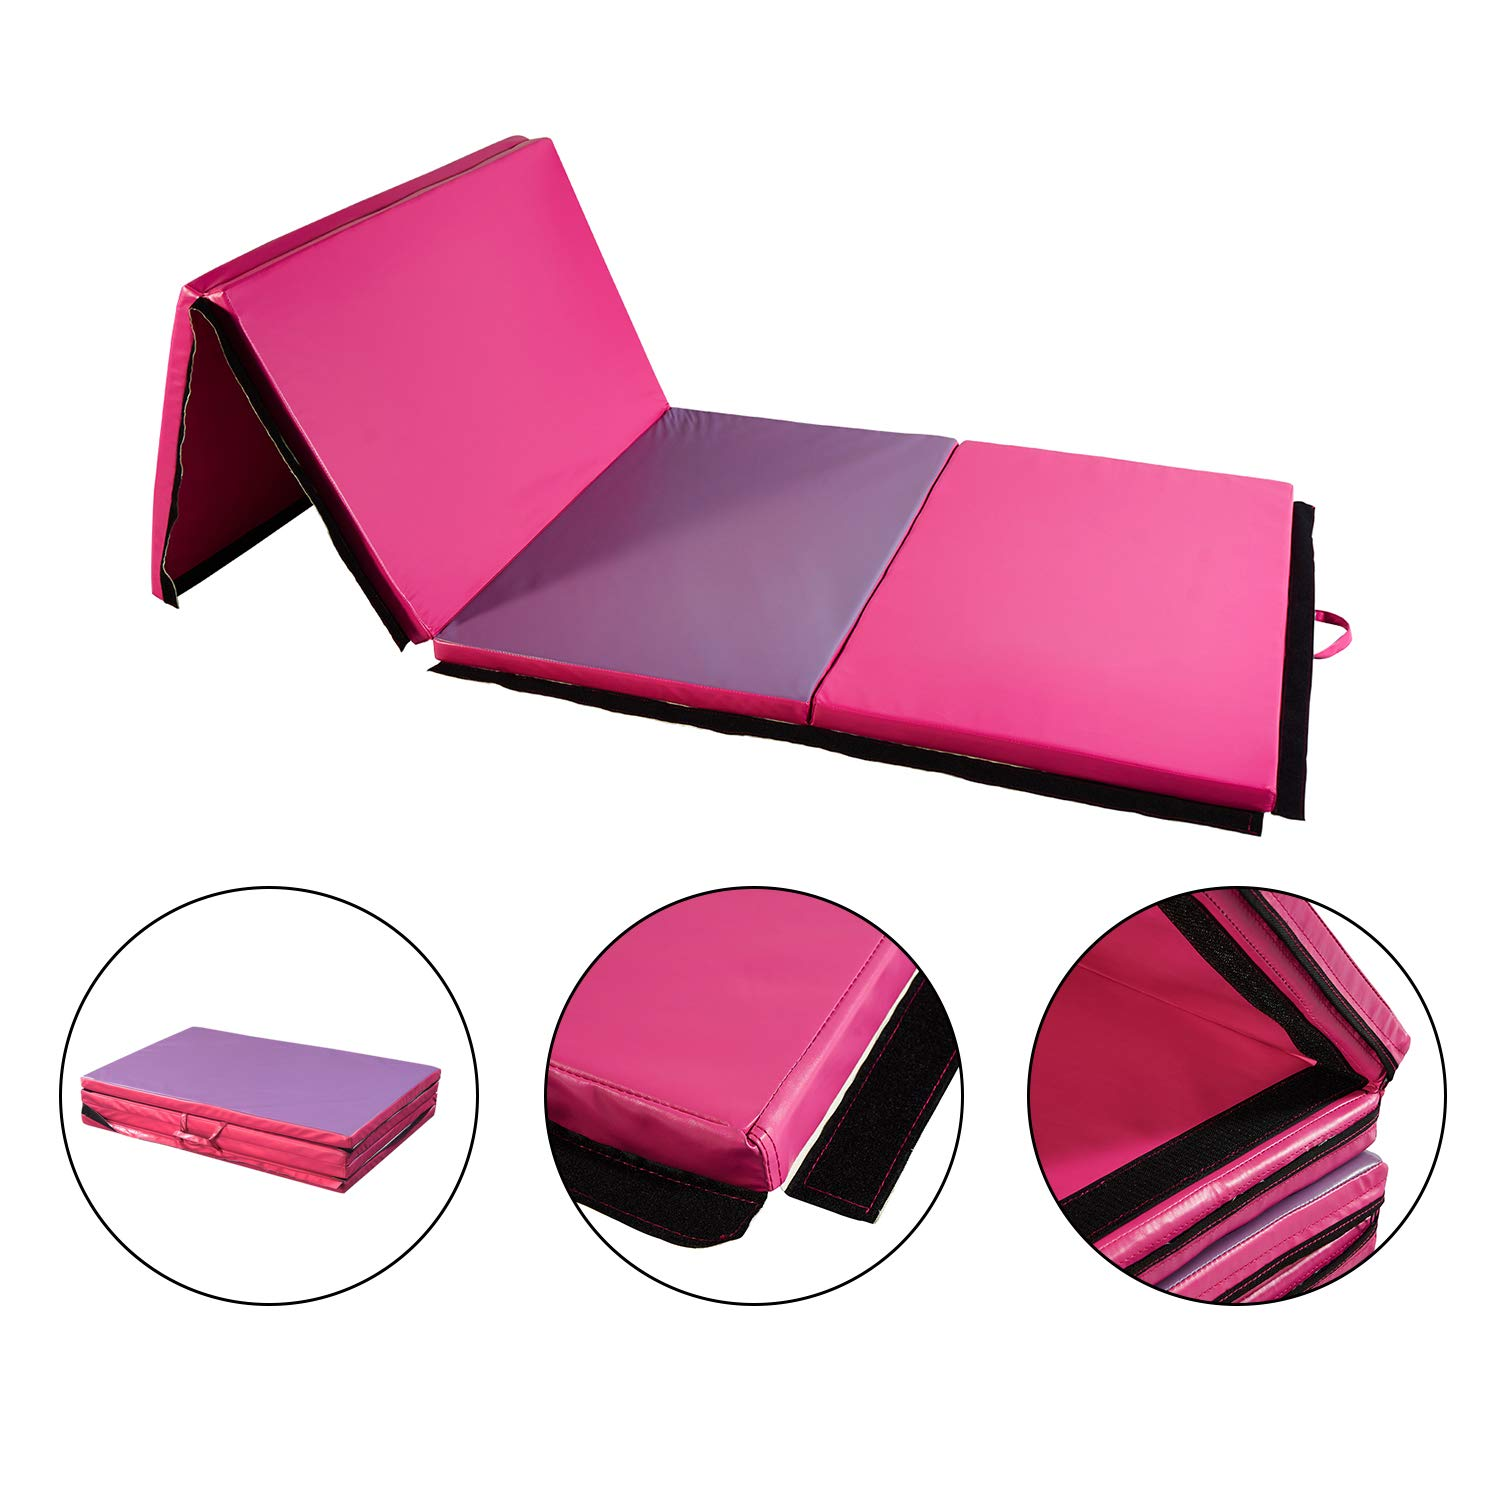 Wonlink 4' x 10' x 2'' Durable Foldable Gymnastic Mat for Various Exercise Activities